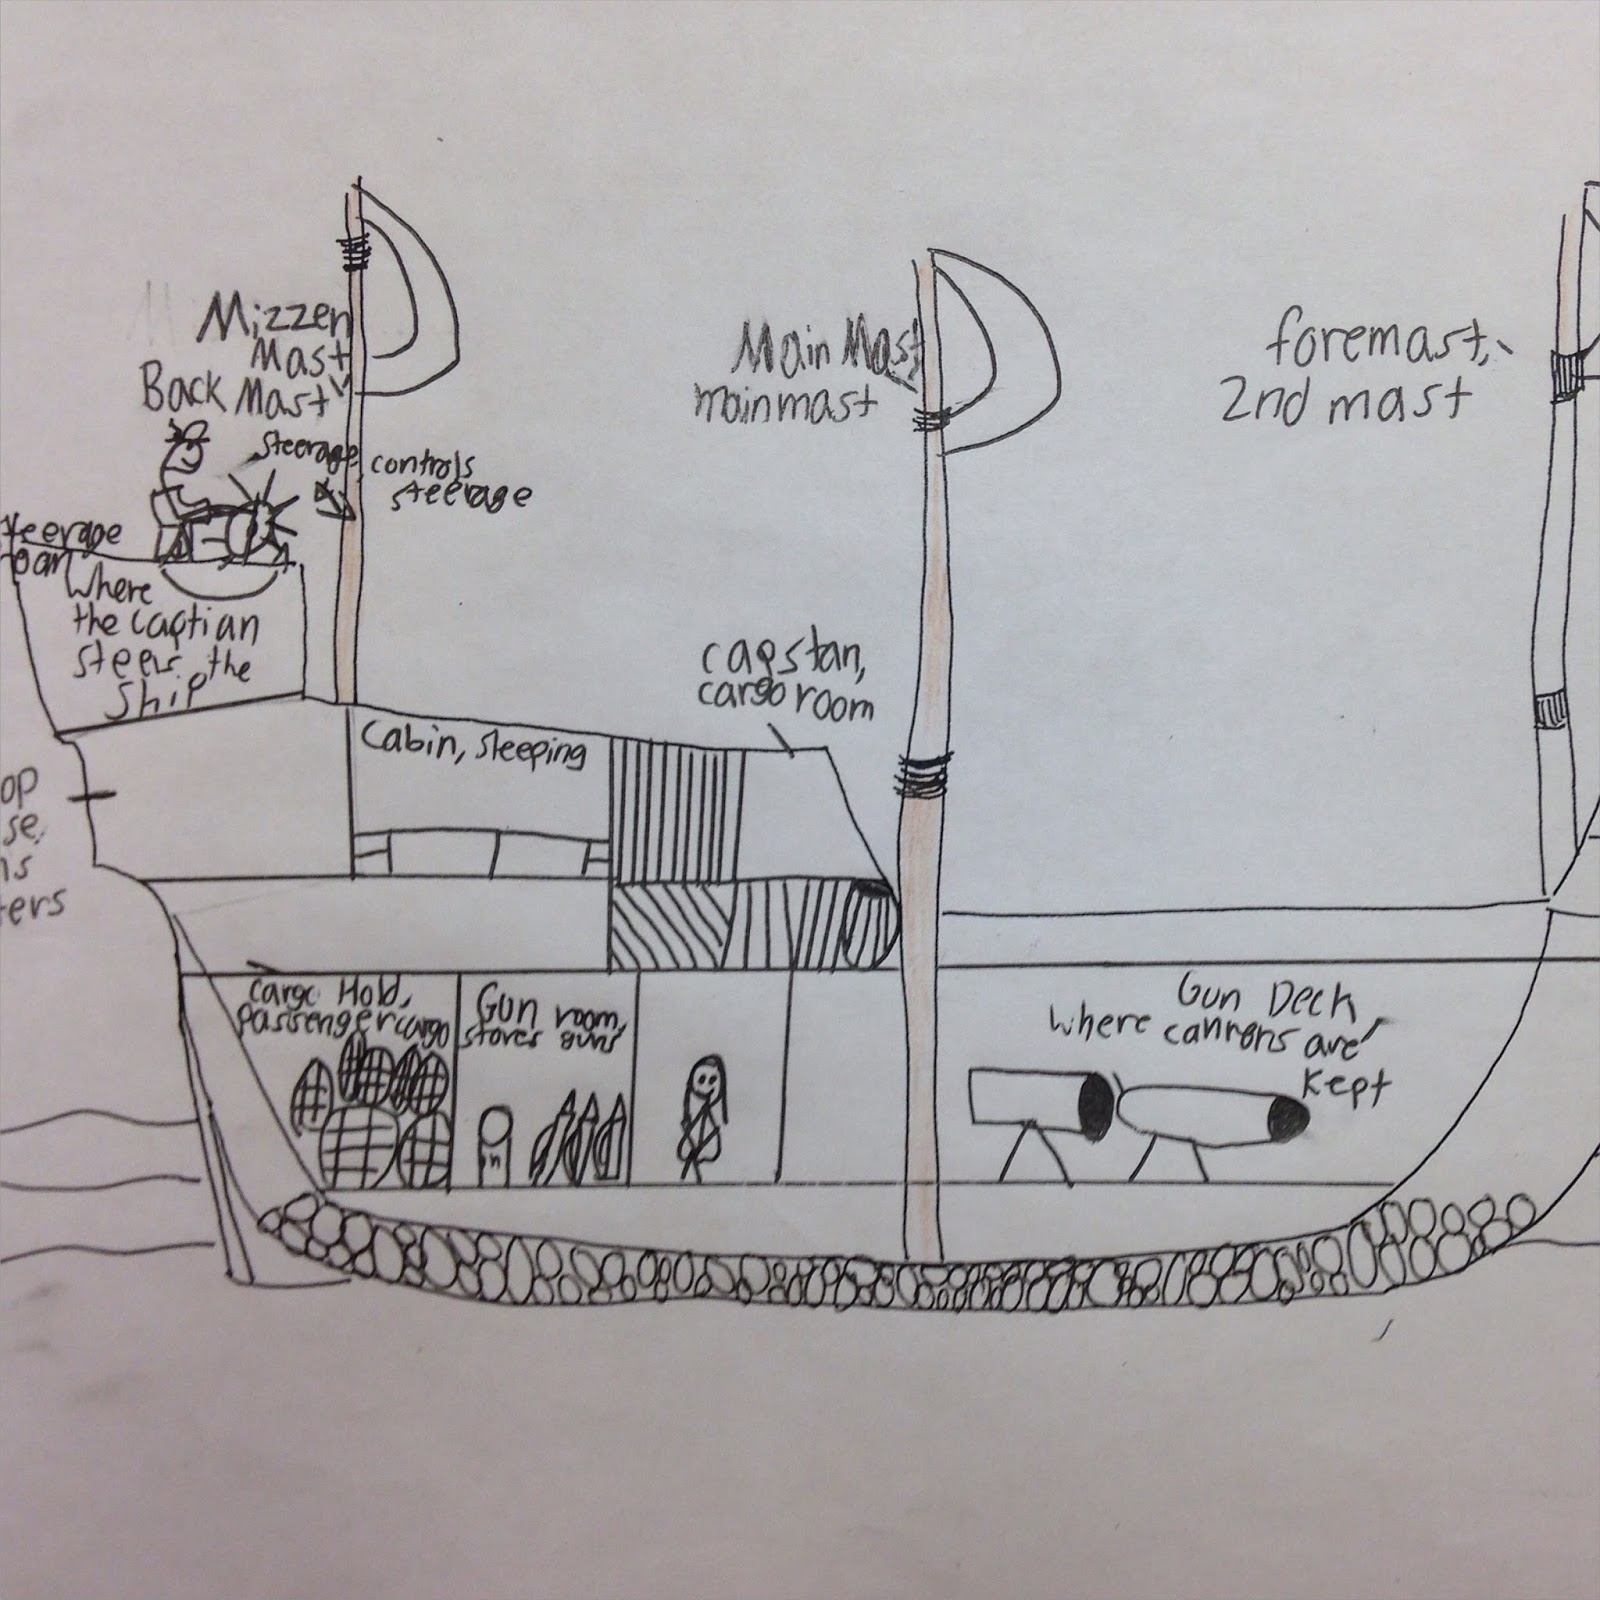 Lesson deli mayflower diagrams creating cutaway mayflower diagrams with 14 main ship parts labeled we defined the ship parts first and then searched mayflower diagrams and pictures ccuart Gallery